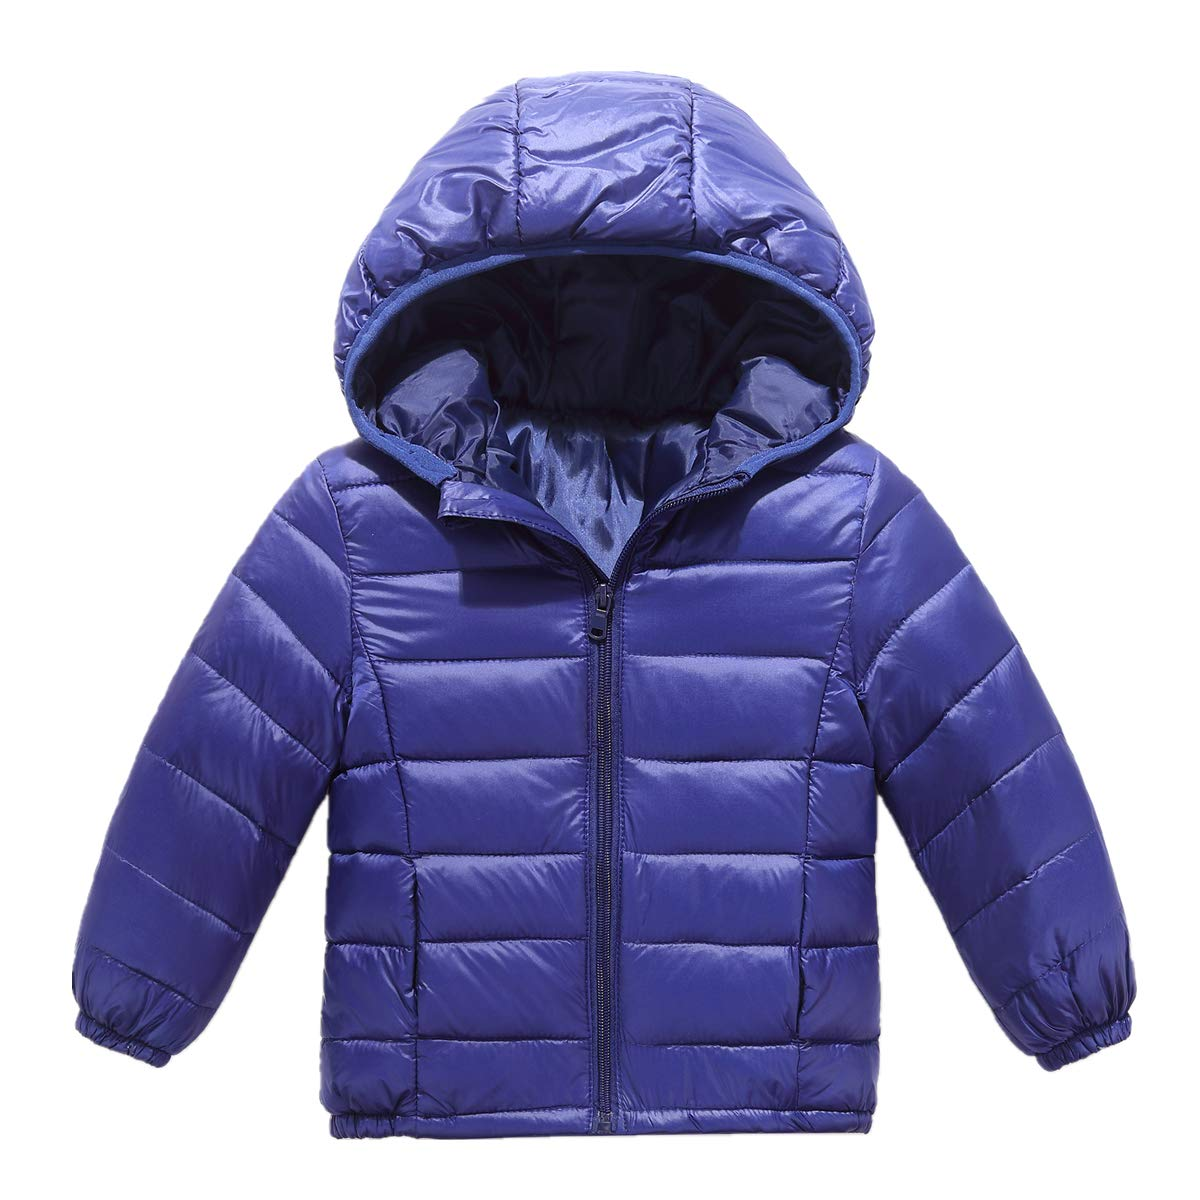 RUI CHENG Kid Down Outwear Boys Girls Lightweight Puffer Hooded Quilted Puffer Coat 2 8 Y